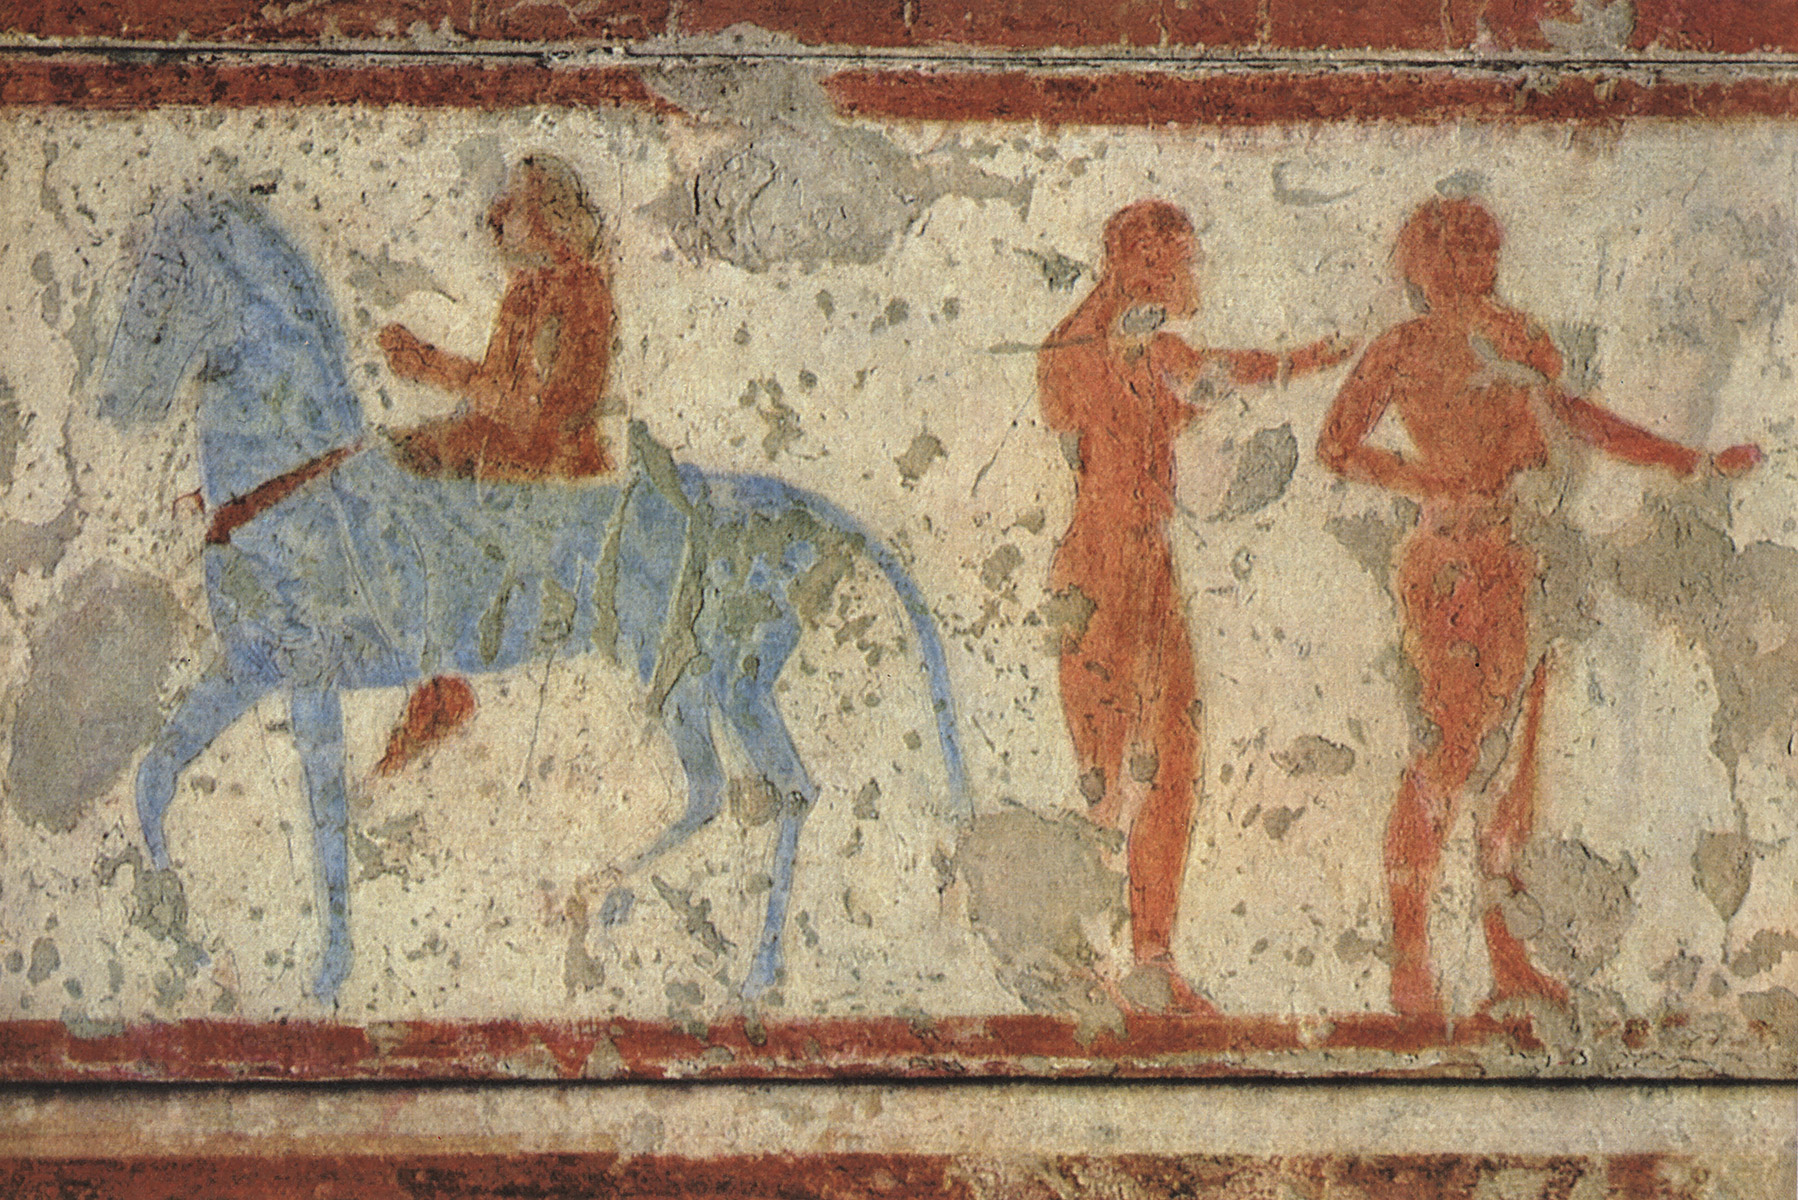 Athletes and horseman. 5th century BCE. Tarquinia, Tomb of the Chariots